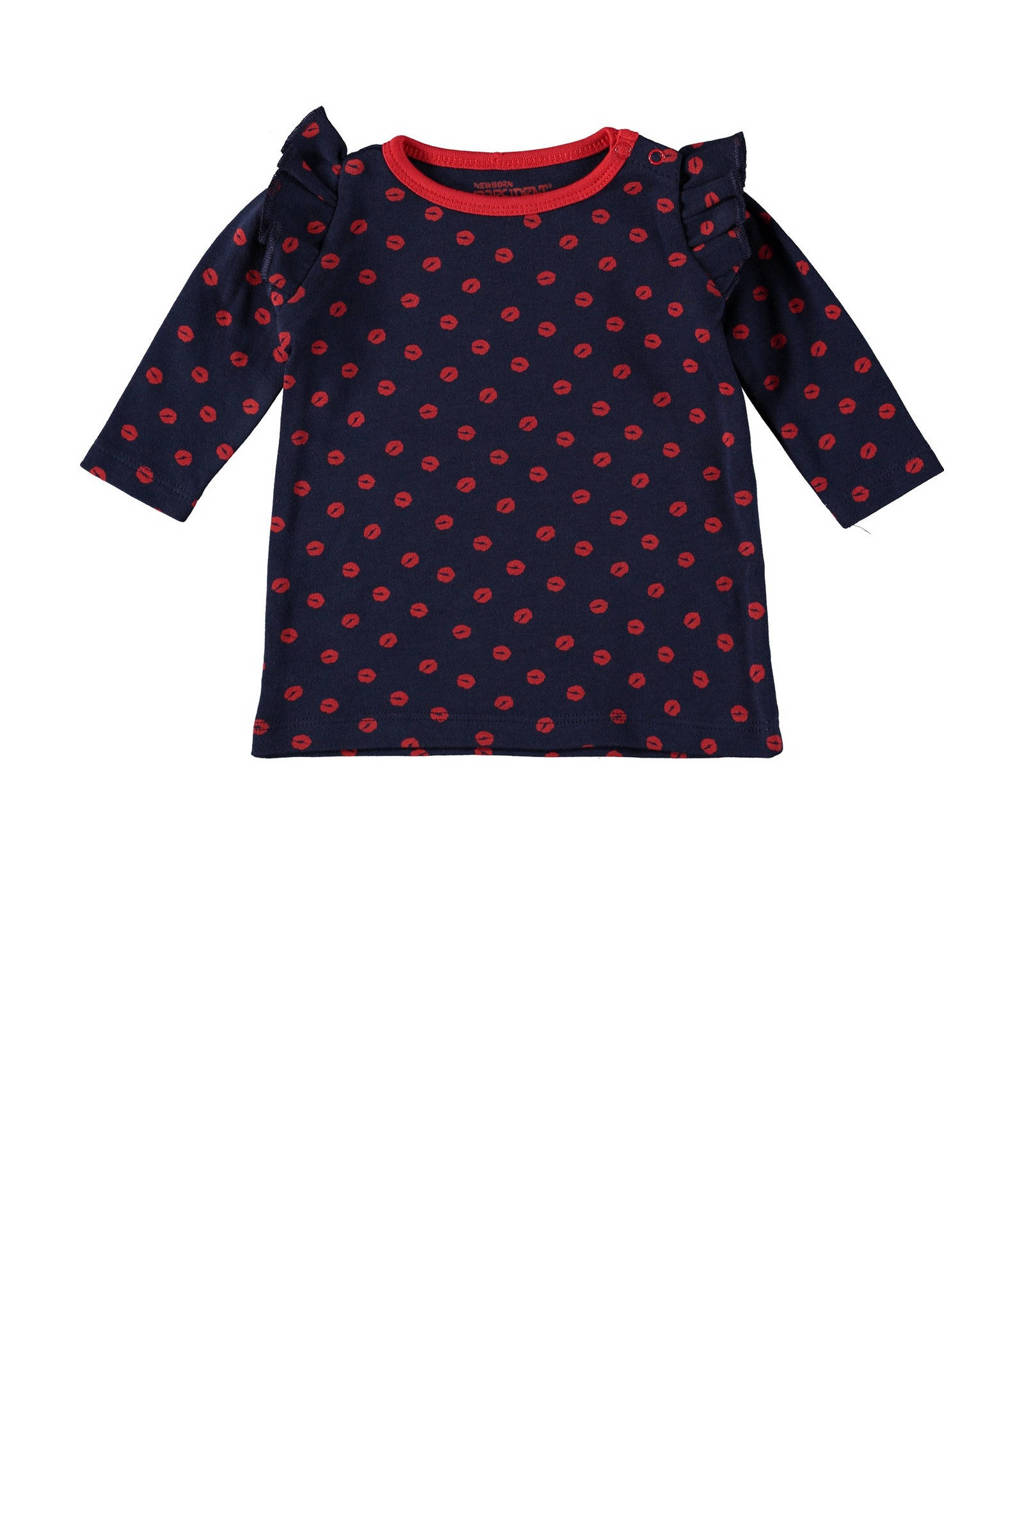 4PRESIDENT baby jurk Sloane met all over print en ruches donkerblauw/rood, Donkerblauw/rood